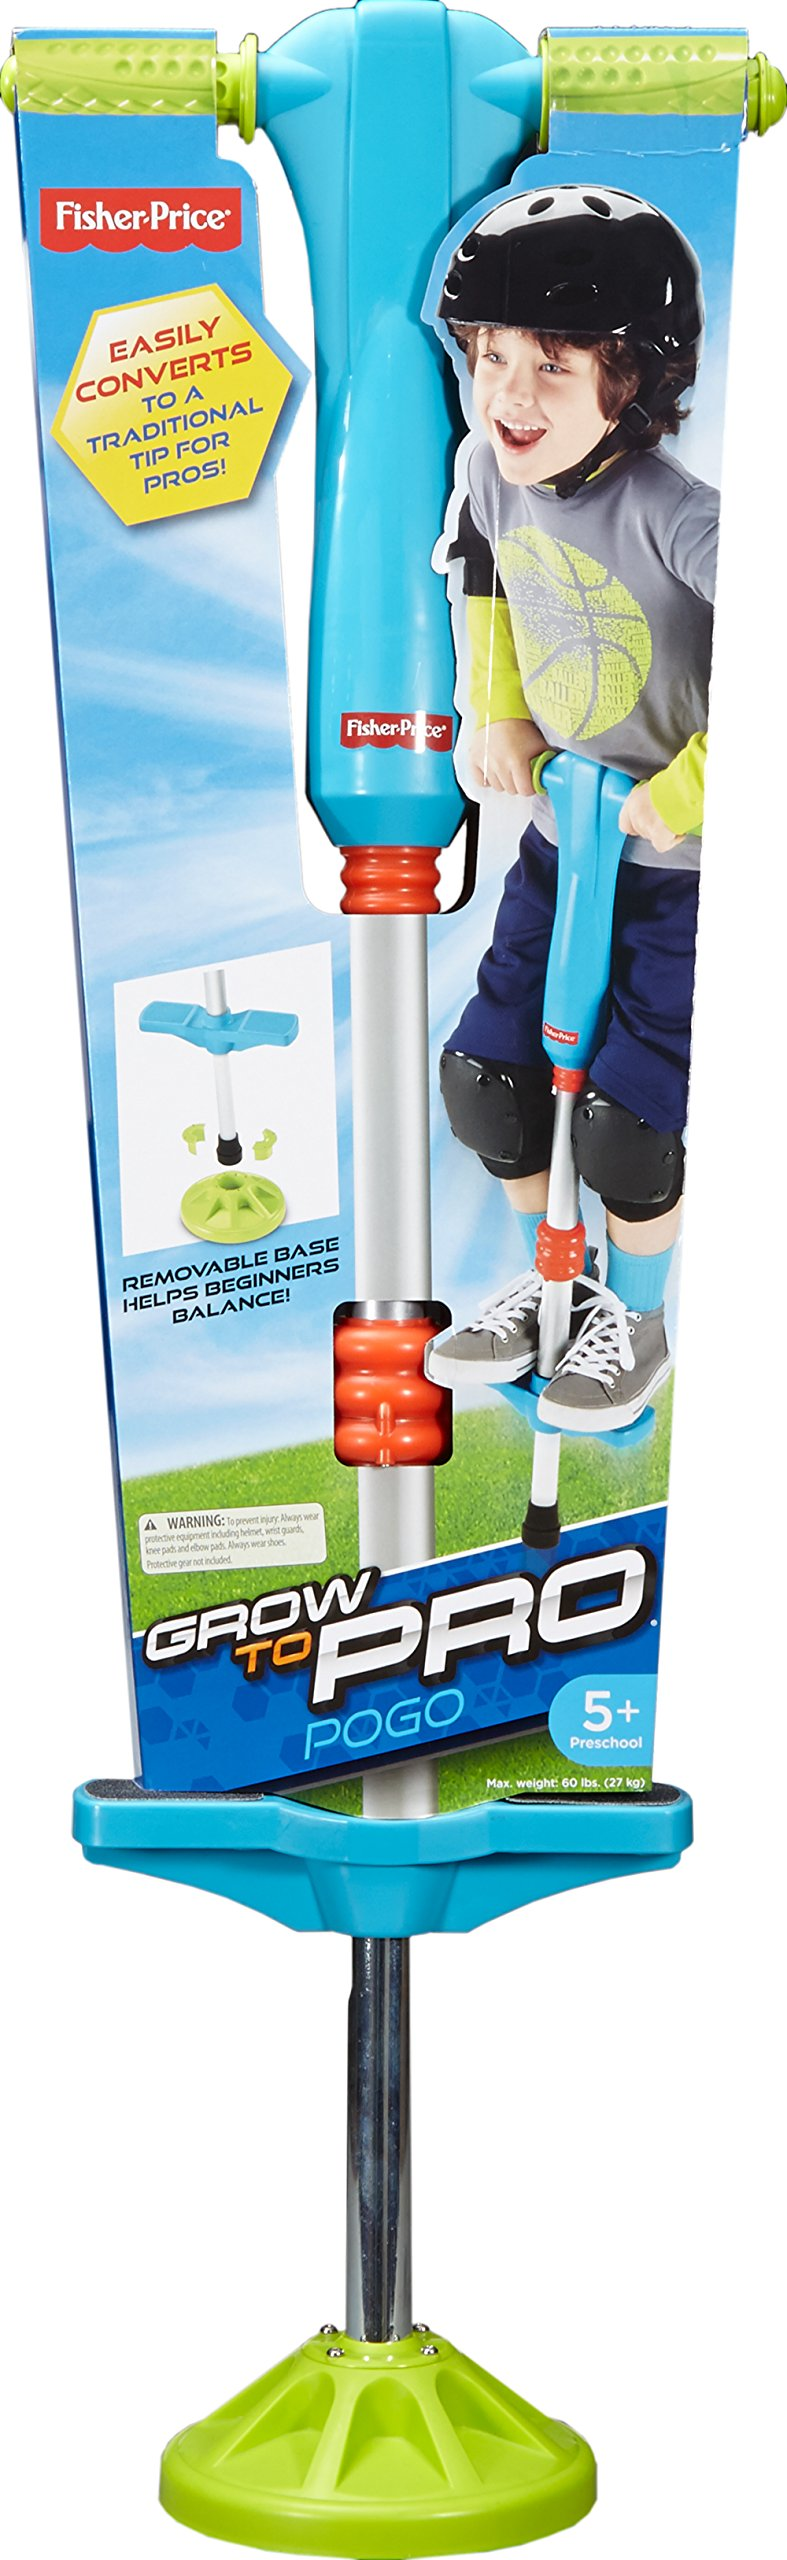 Fisher-Price Grow-to-Pro 3-in-1 Pogo by Fisher-Price (Image #5)